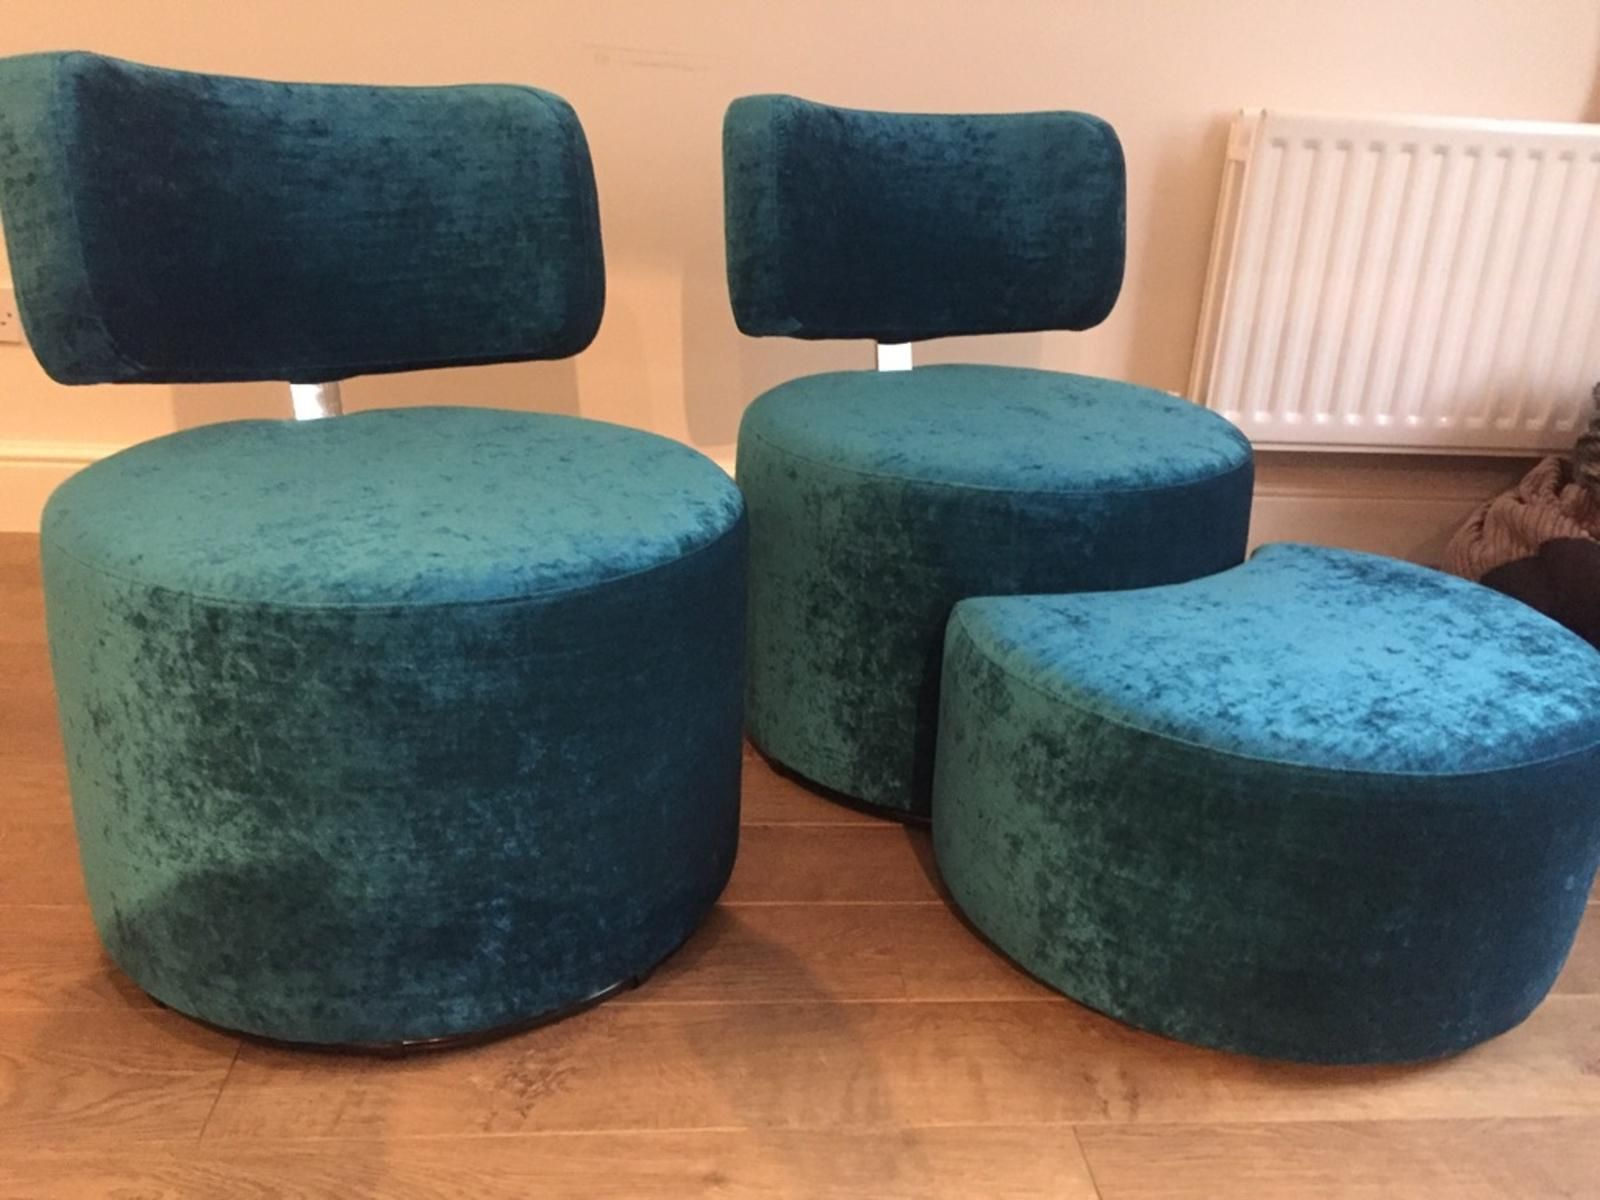 Quirky compact circular armless swivel chairs with a matching three quarter circular stool. Covered in Ross Fabrics Pistache - slub velvet - petrol. & Limited space? Then youu0027ll just want he compact swivel chair. If ... islam-shia.org